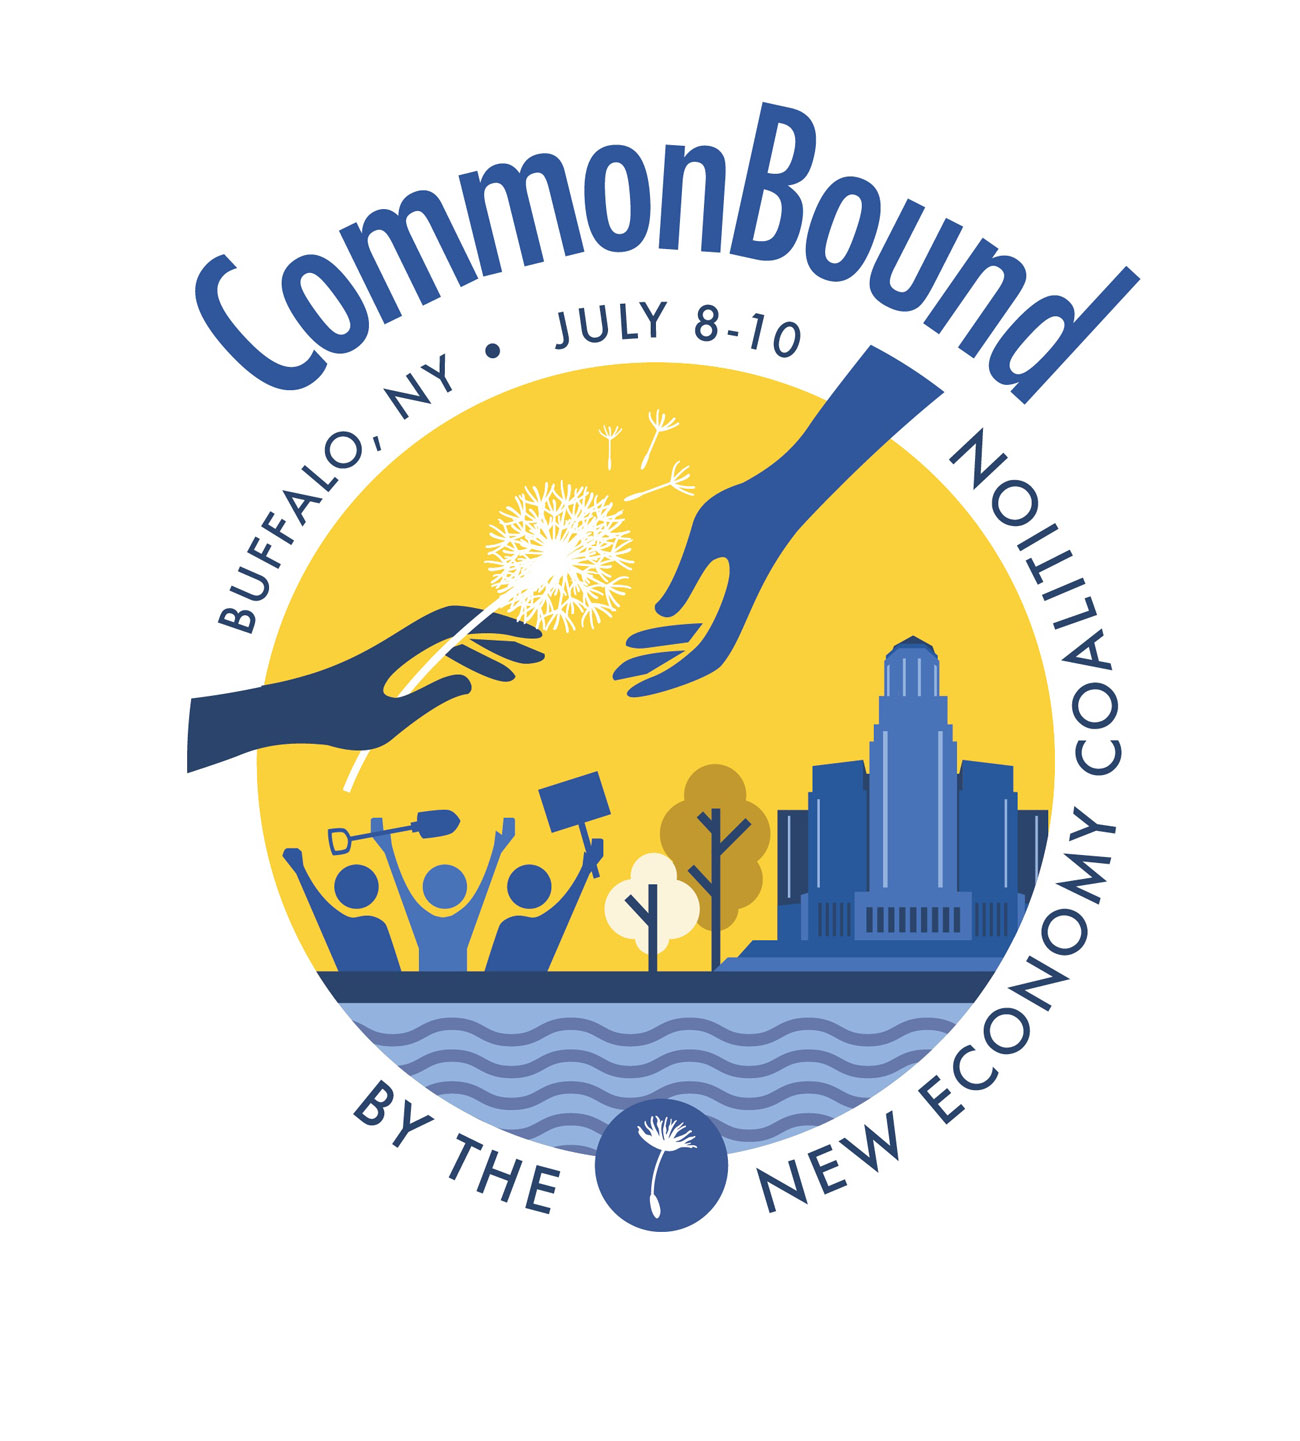 CommonBound 2016